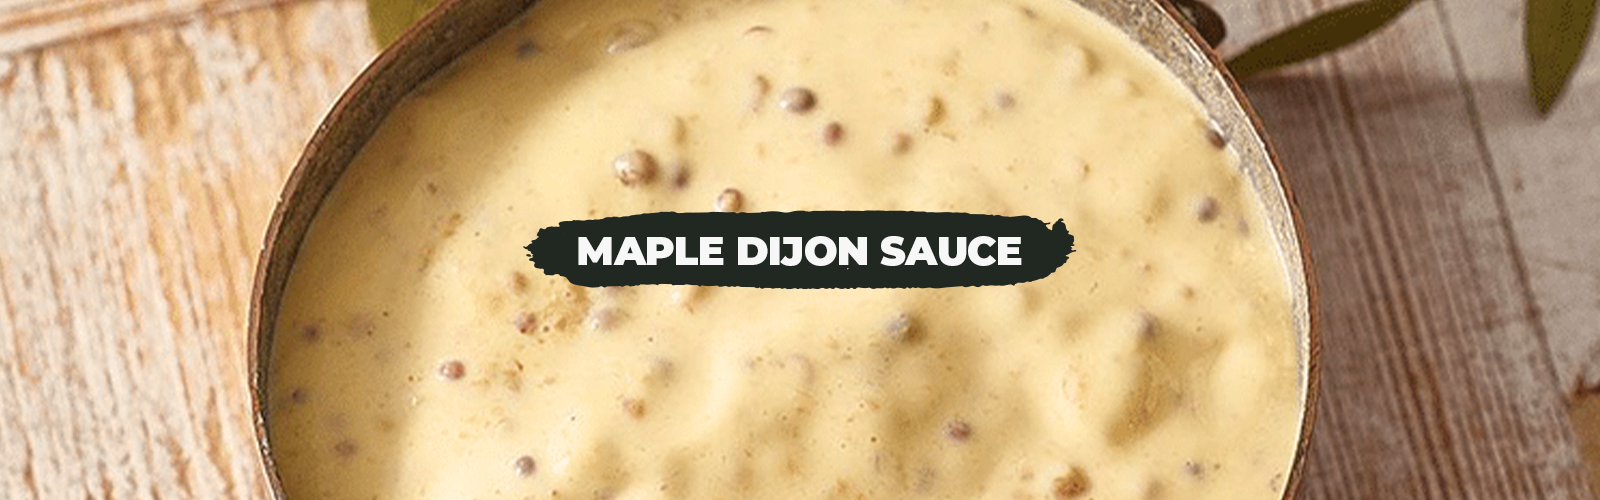 Maple Dijon Sauce